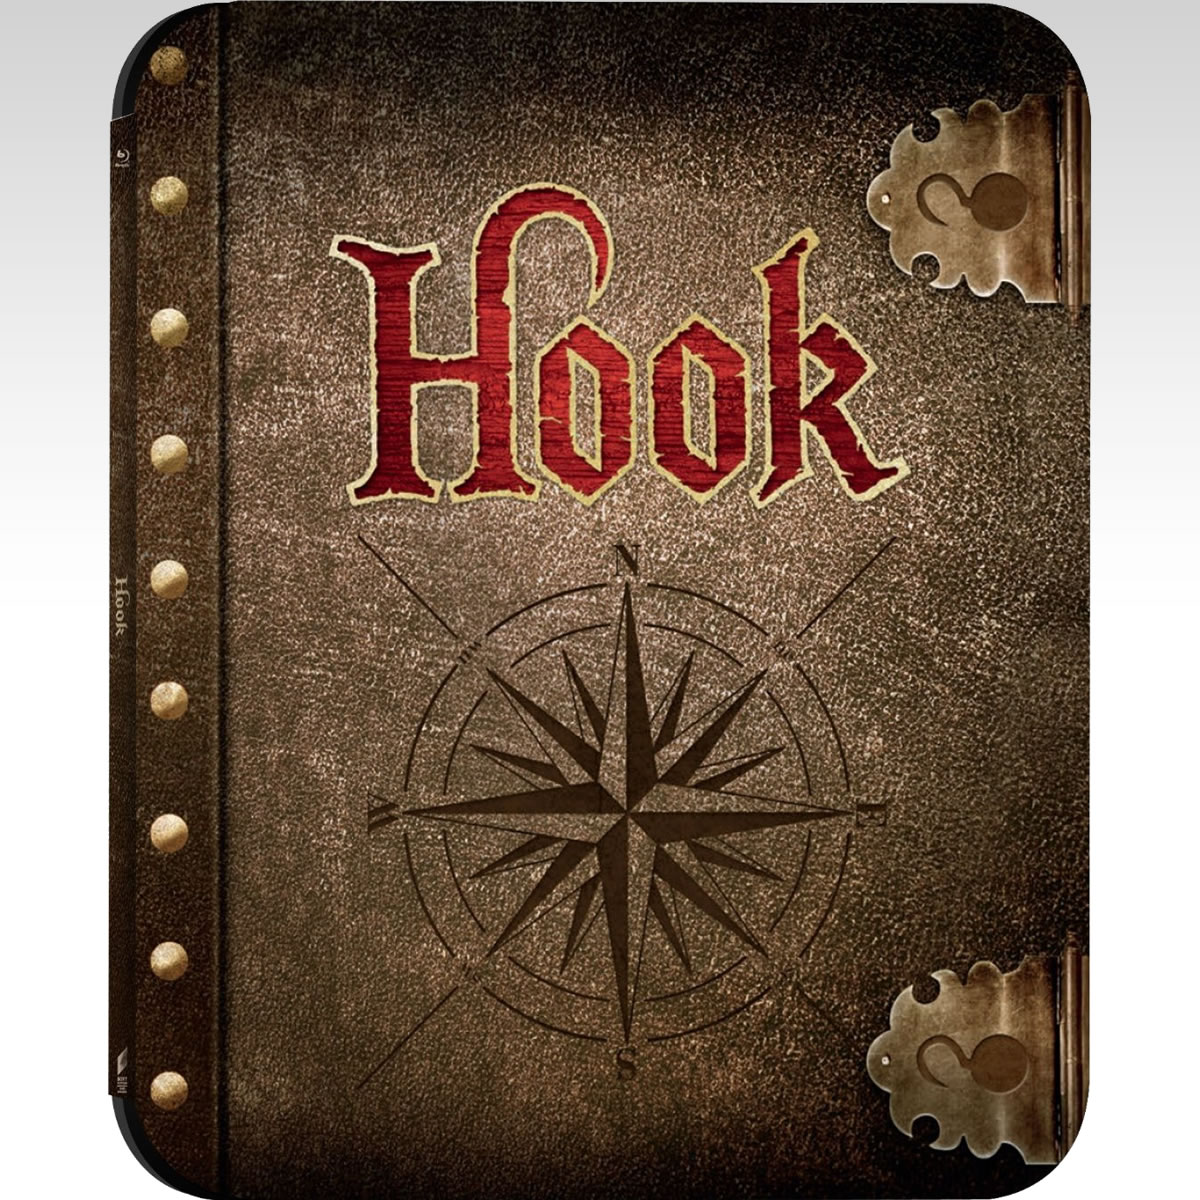 HOOK Limited Edition Steelbook (BLU-RAY)